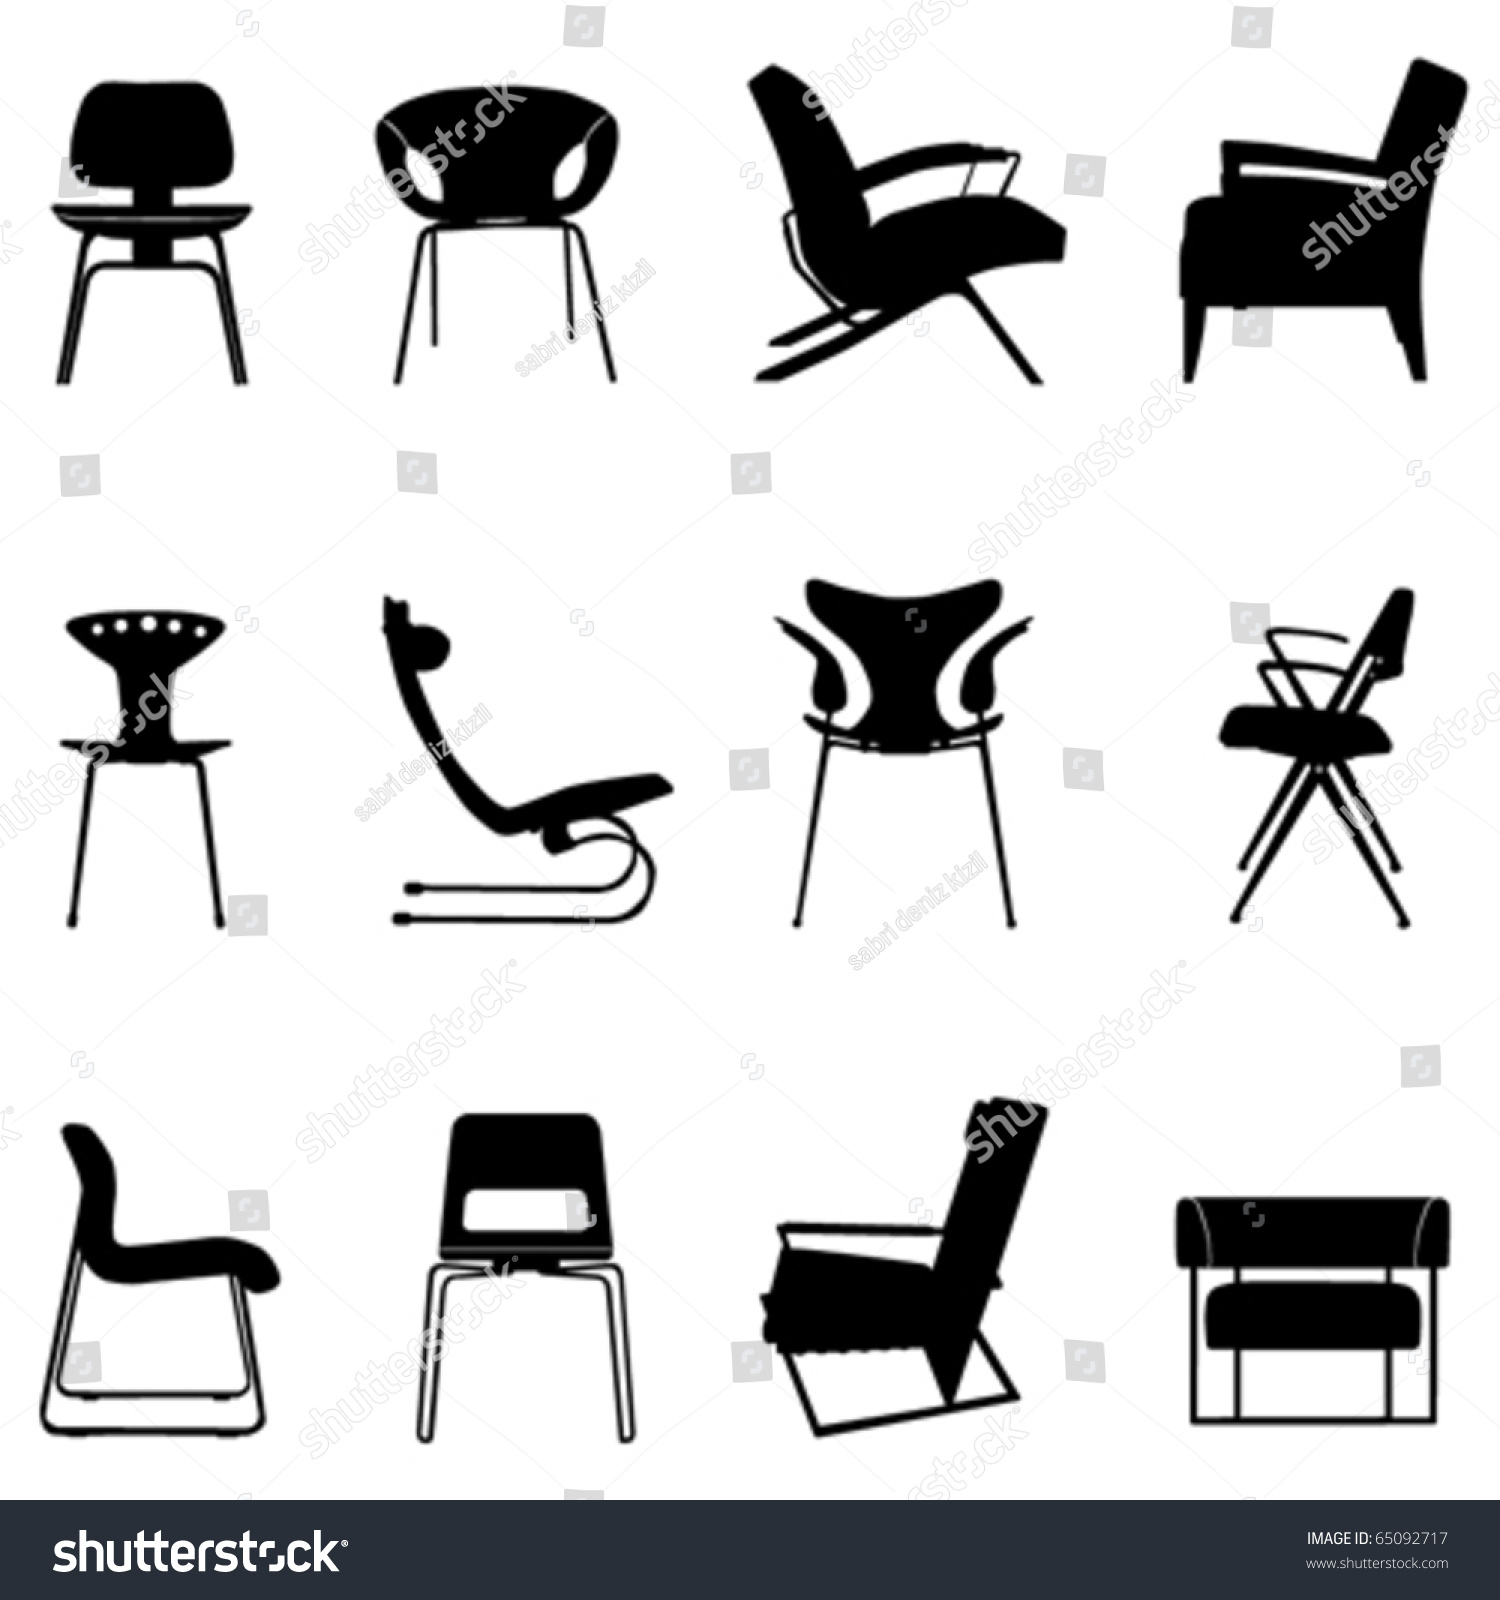 Adirondack chairs clipartsilhouette free images at clkercom - Source Image Shutterstock Com